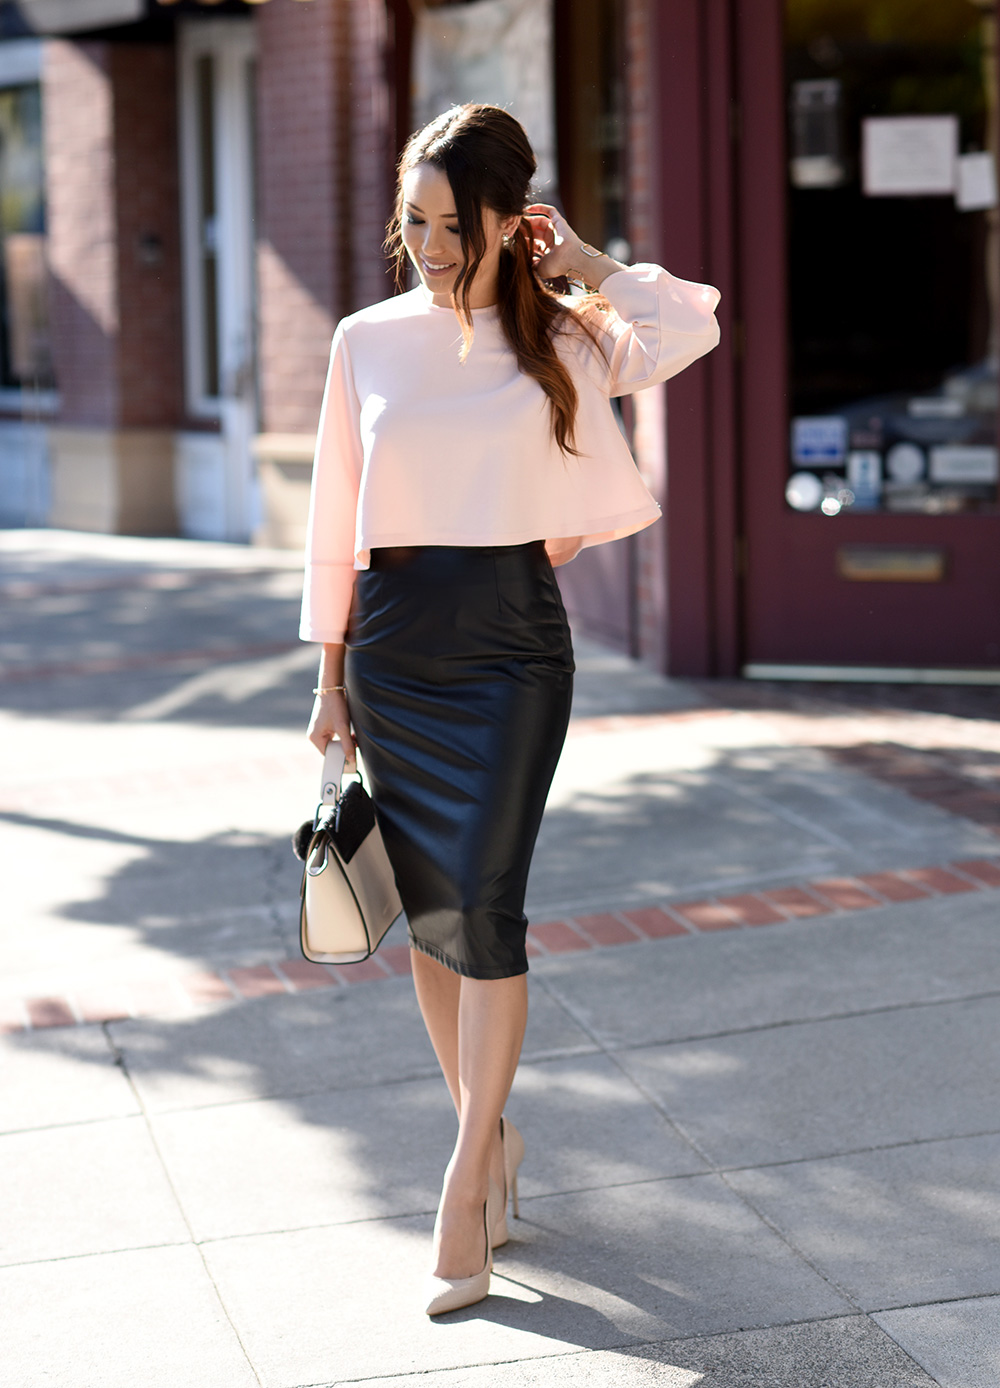 Jessica R. opts for a bold faux leather skirt paired with a girly pink top to create a fierce yet feminine style. Pair more punk (leather and jean) pencil skirts with florals, lace, or pastels to create eye-catching contrast. Skirt: Faux Leather, Top: West LA Boutique, Shoes: Steve Madden, Purse: Melie Bianco, Bracelet: Bebe, Earrings: Dainty and Bold